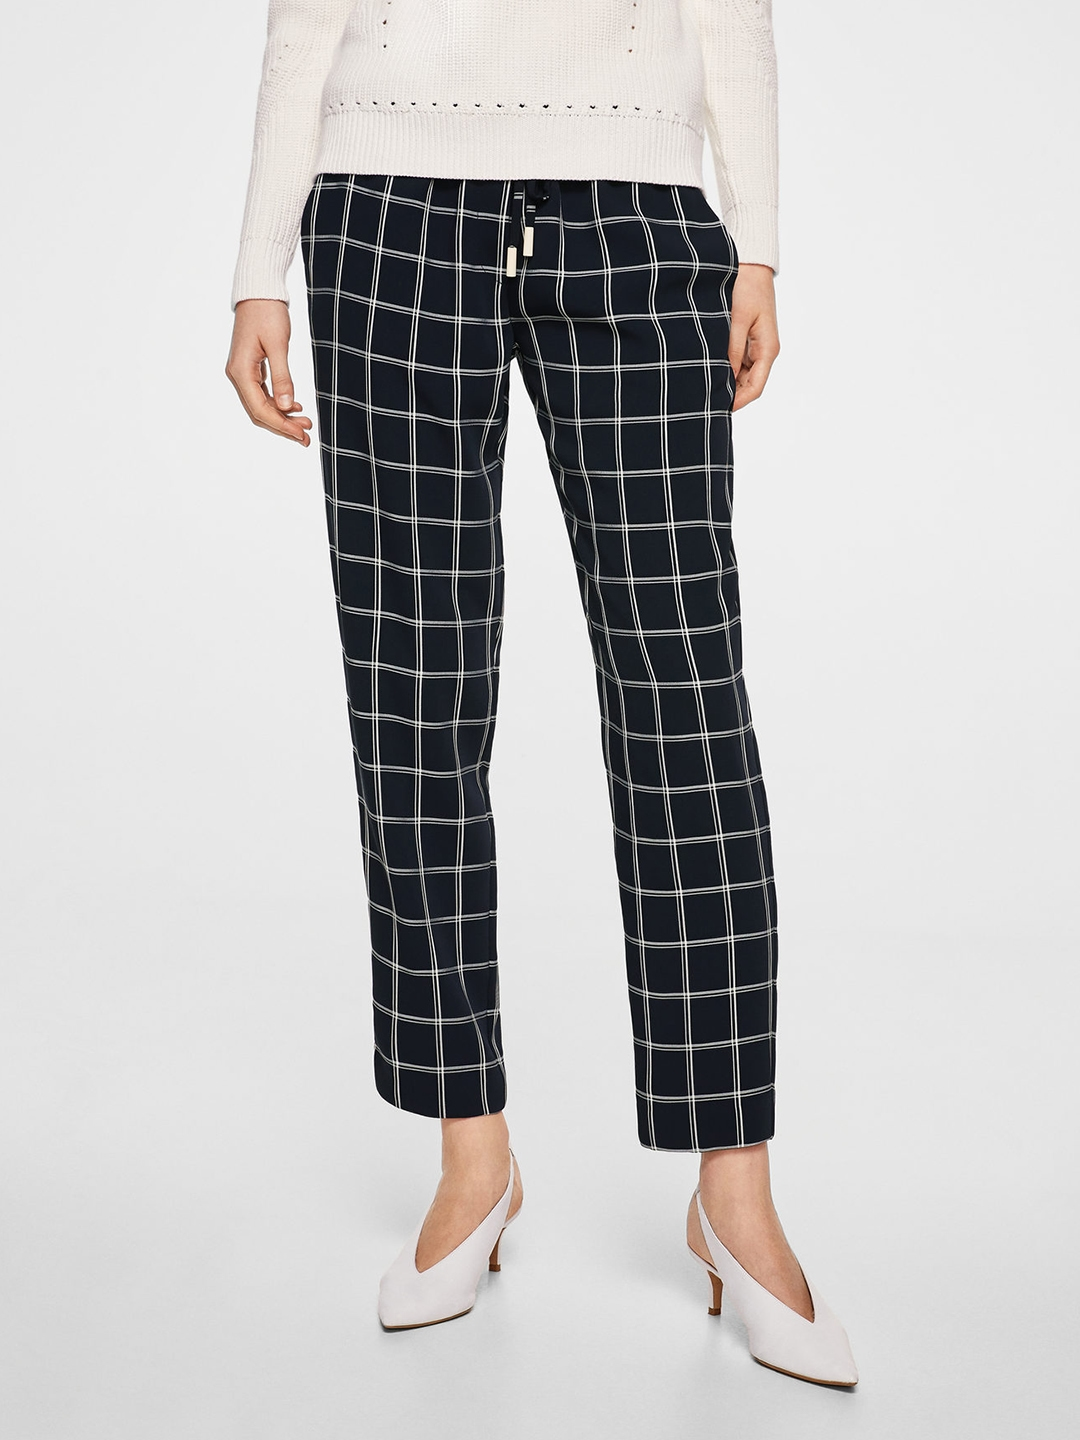 786bc2f38f2 Buy MANGO Women Navy Blue Regular Fit Checked Trousers - Trousers ...